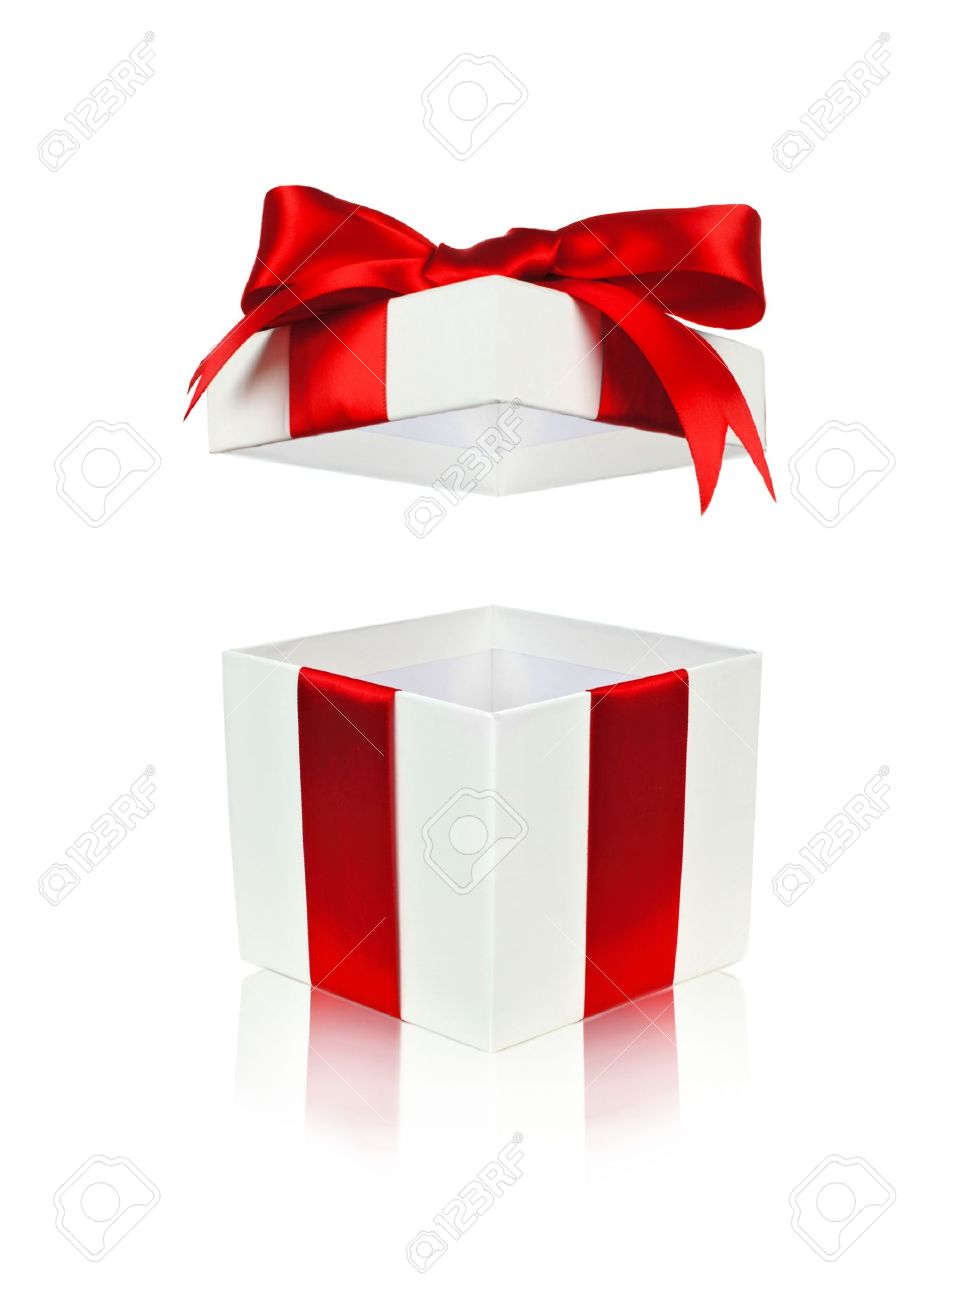 Open Red And White Gift Box With Floating Lid Isolated On White.